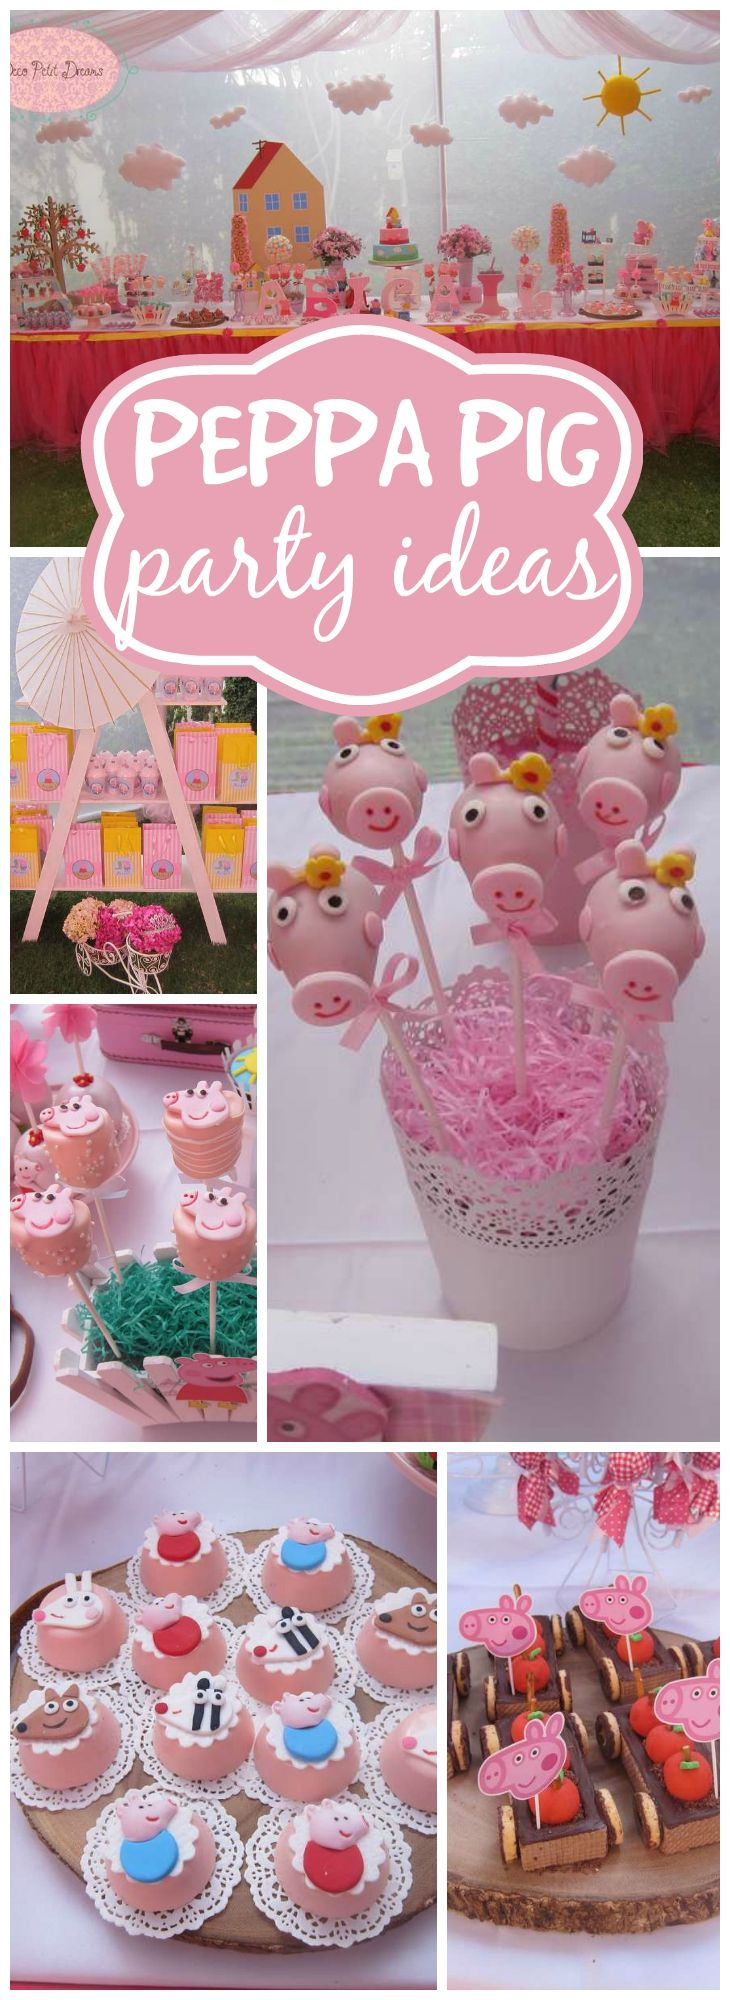 Peppa Pig Birthday Party Ideas for a girl!